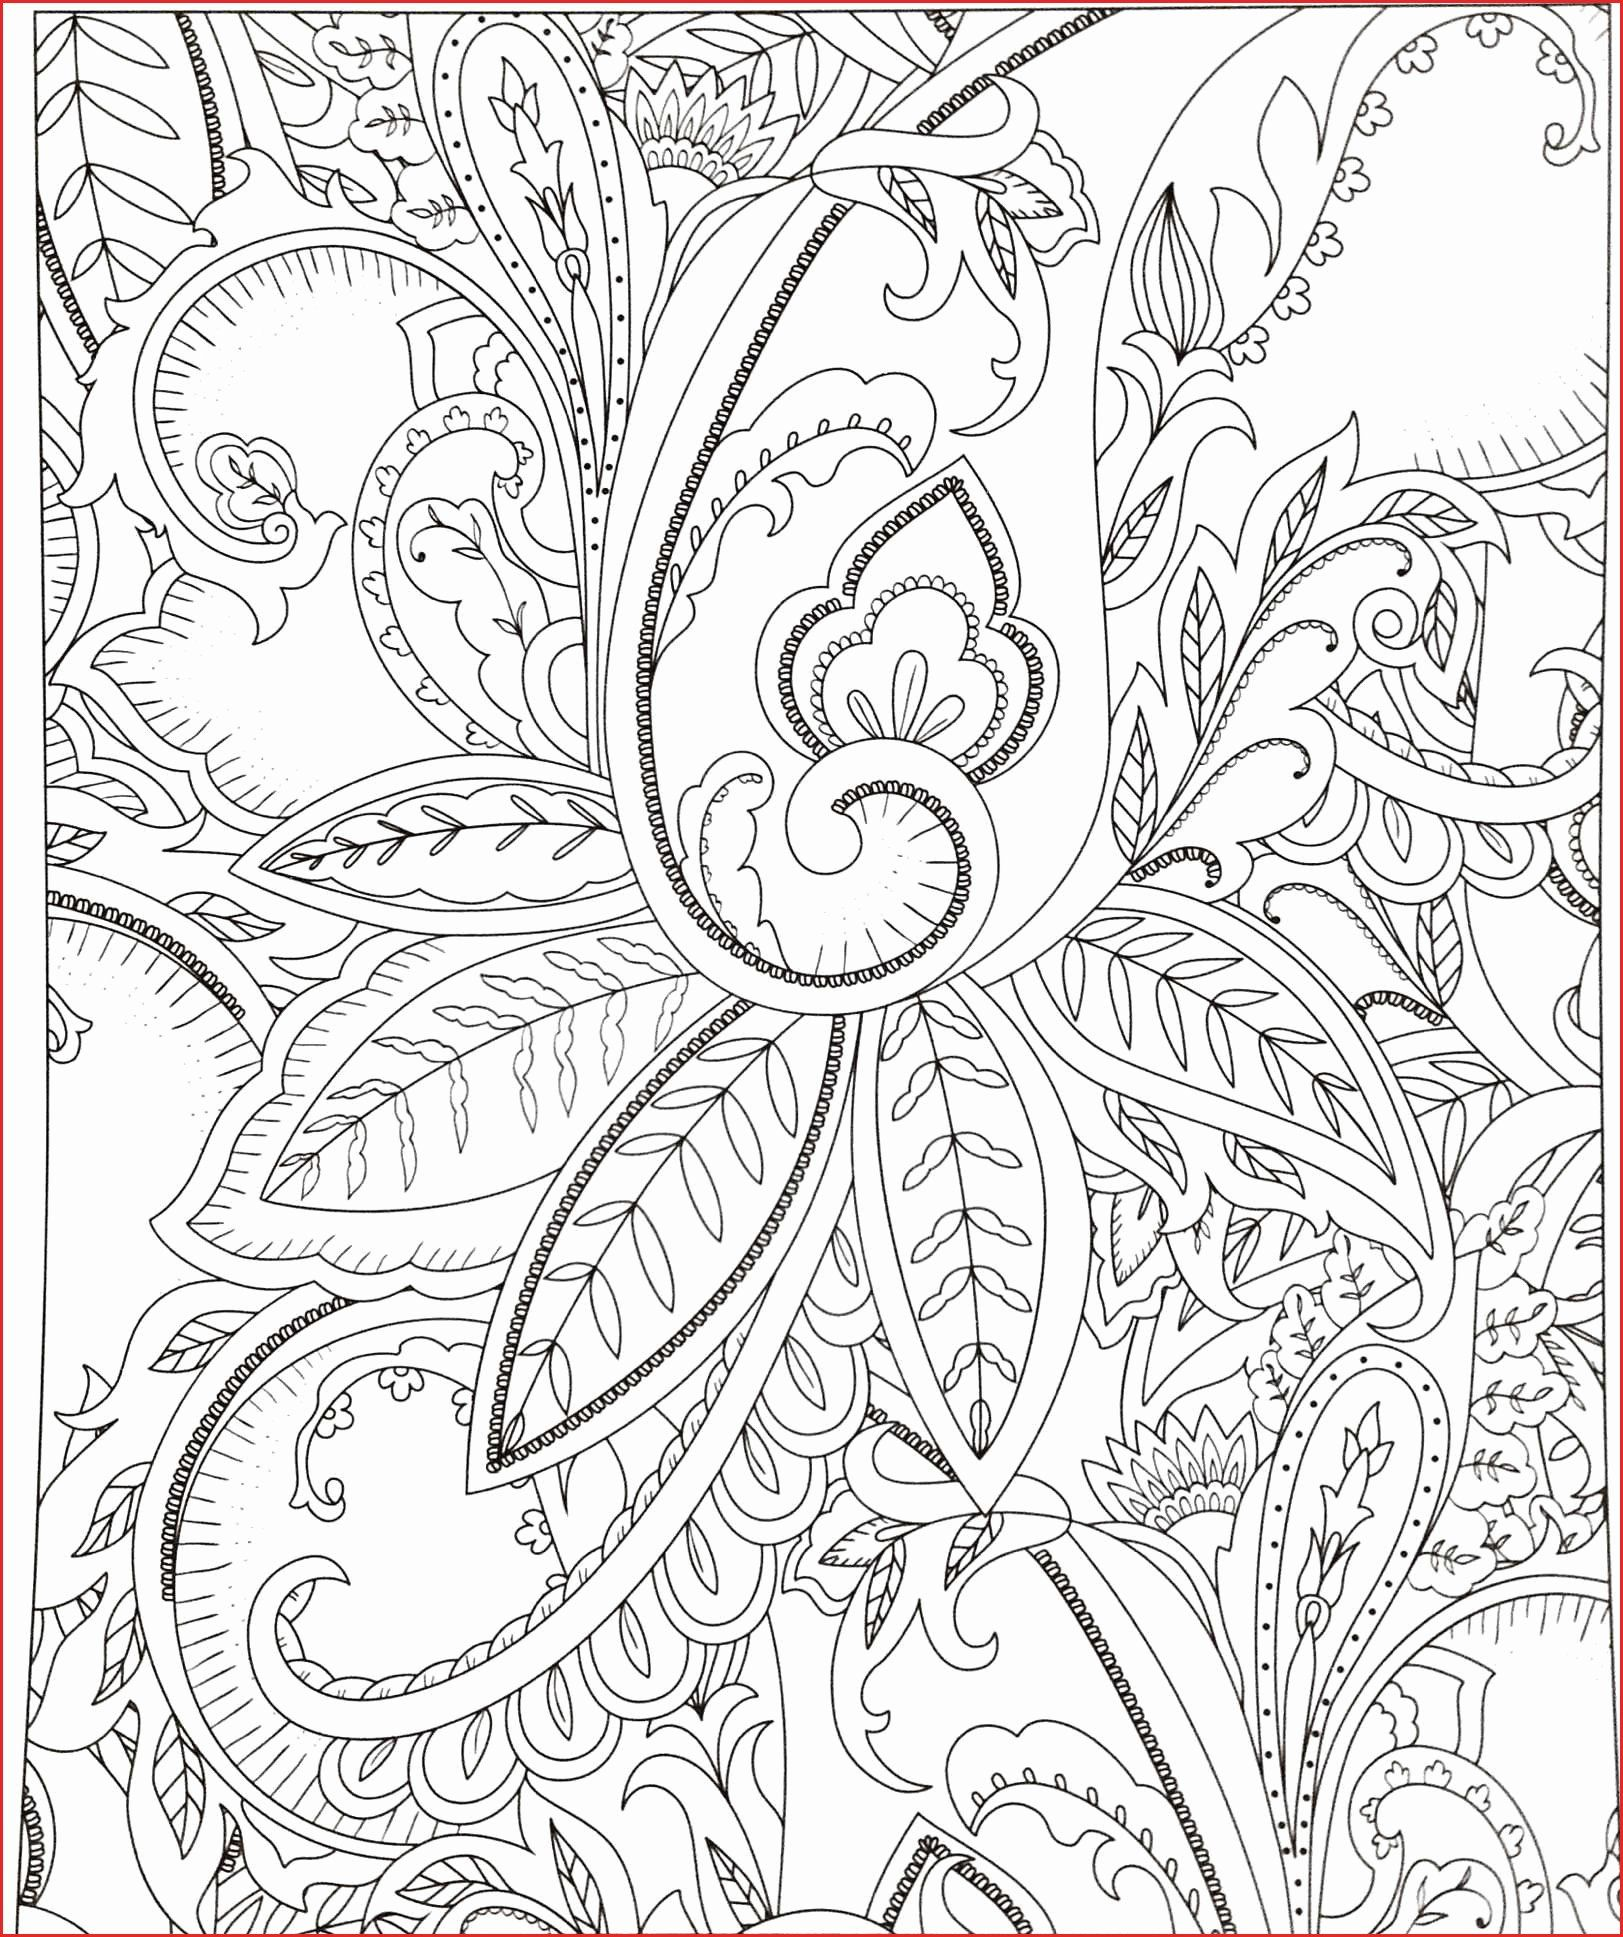 Coloring Pages Cartoon Characters Lovely Fun 2 Draw Easy To Draw Instruments Home Col In 2020 Coloring Pages Inspirational Mandala Coloring Pages Flower Coloring Pages